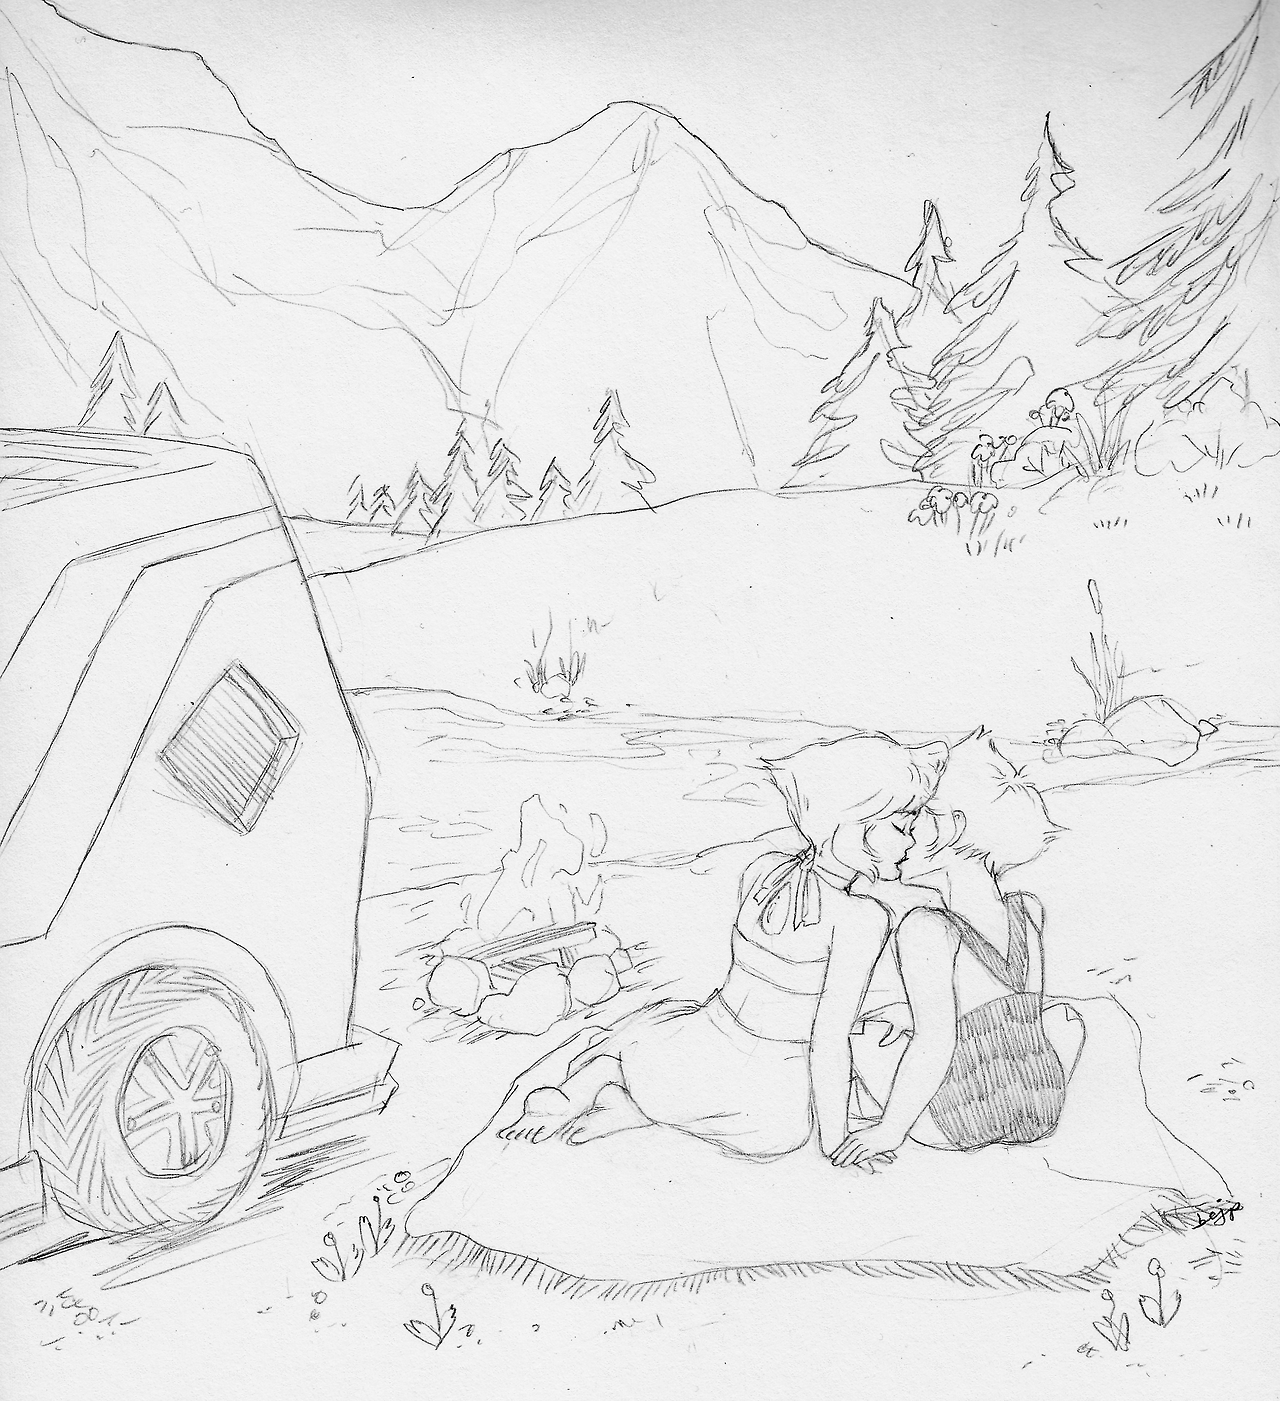 💚💙@lapidot-week day 6: roadtrip!! 🗻 it's that ~*~wanderlust aesthetic~*~ y'know (plus i love drawing mountains